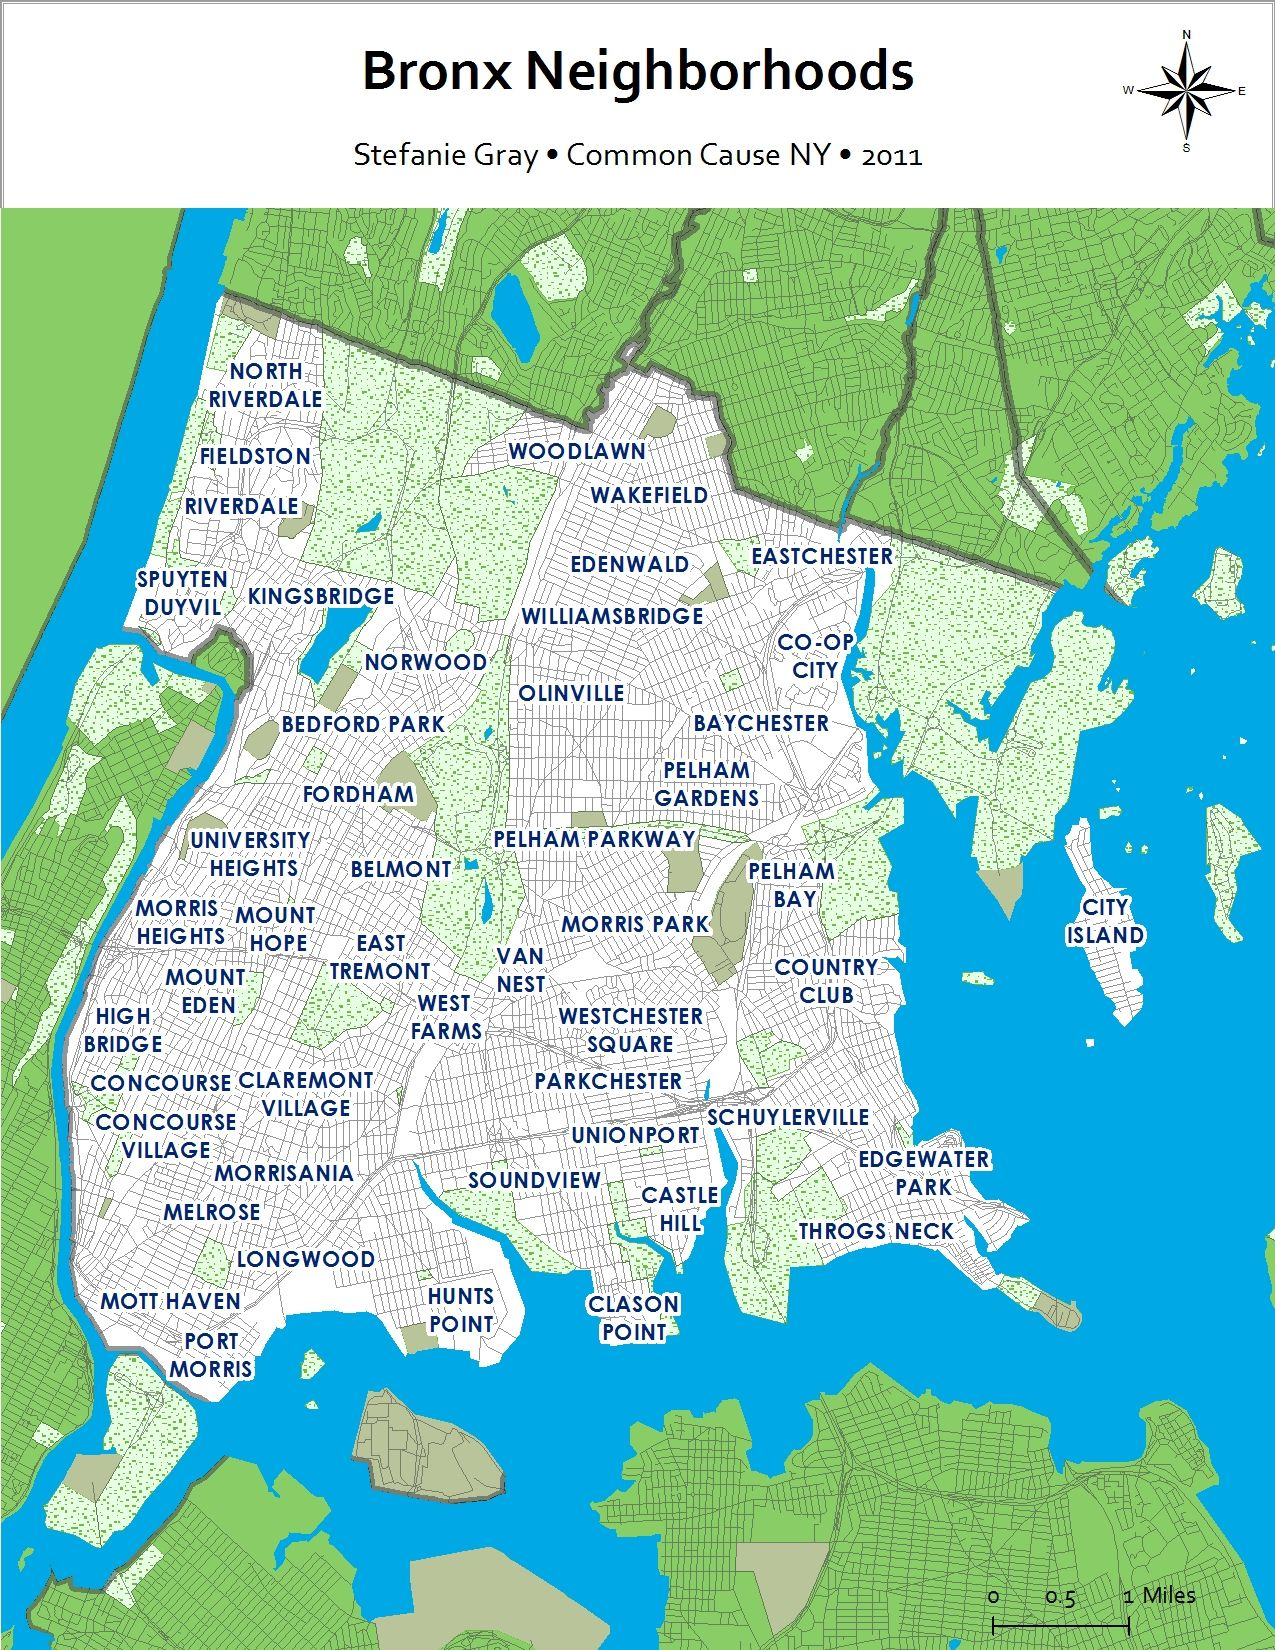 Map Of Greater New York City Area.Pin By Ricky Porter On Greater Newyork Bronx Map Bronx Nyc New